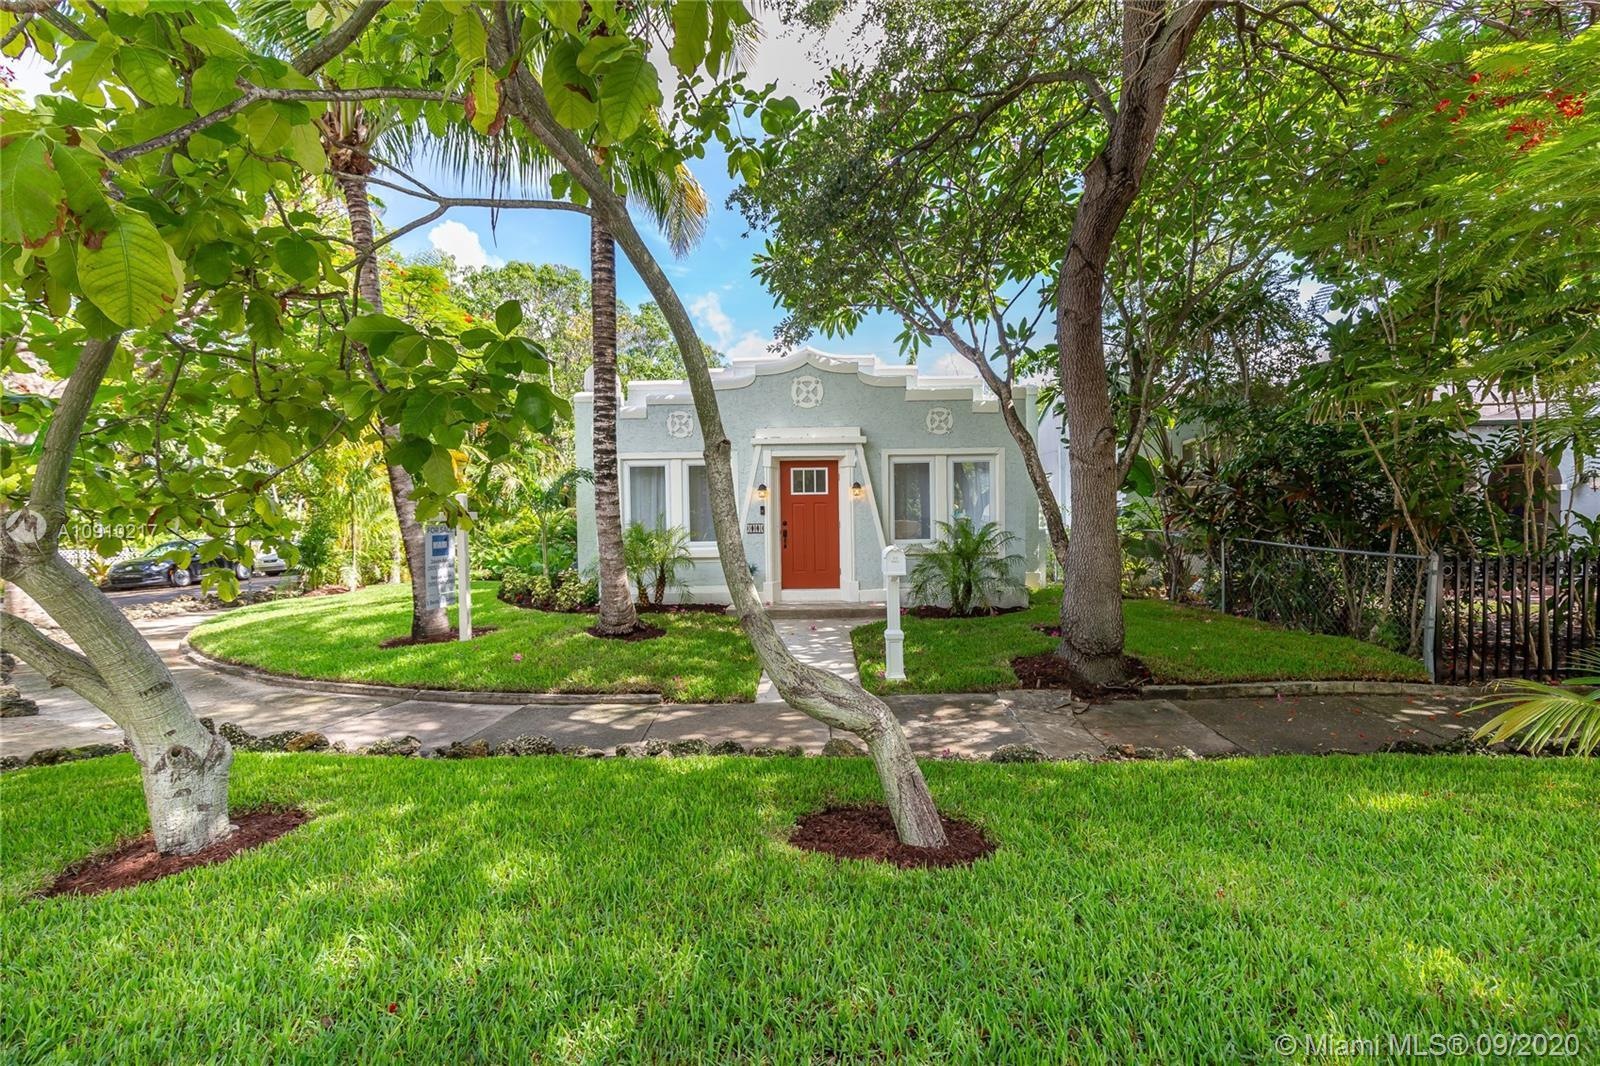 Price reduction! This charming Spanish style bungalow is one of the least expensive, fully renovated